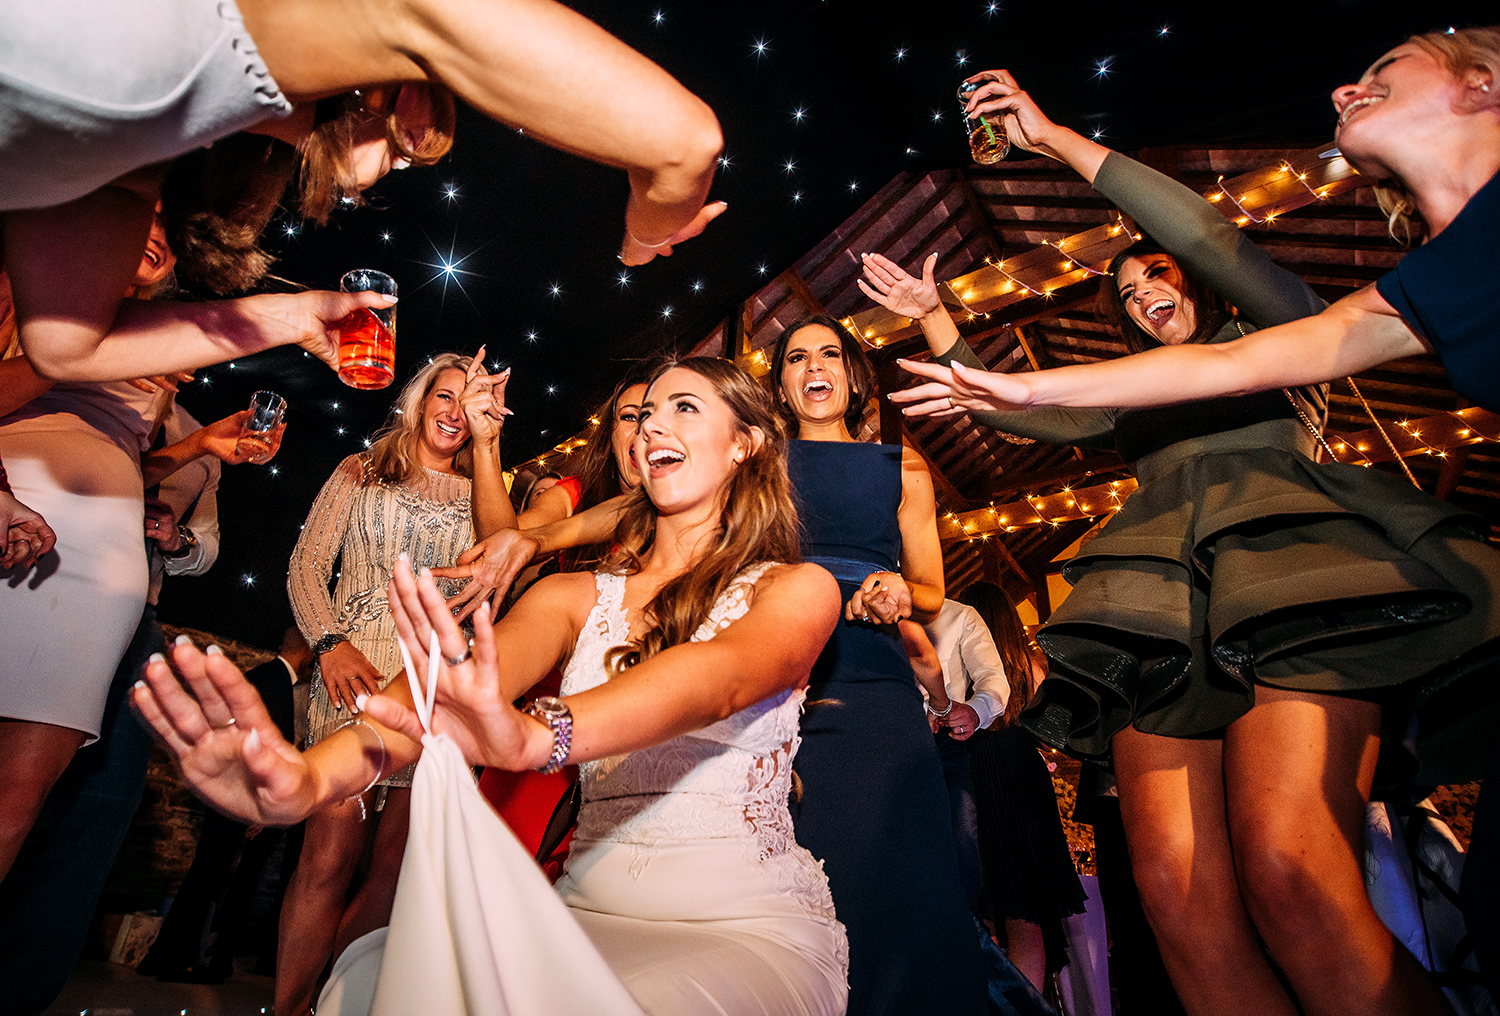 brides friends circle her on the dance floor while they all dance